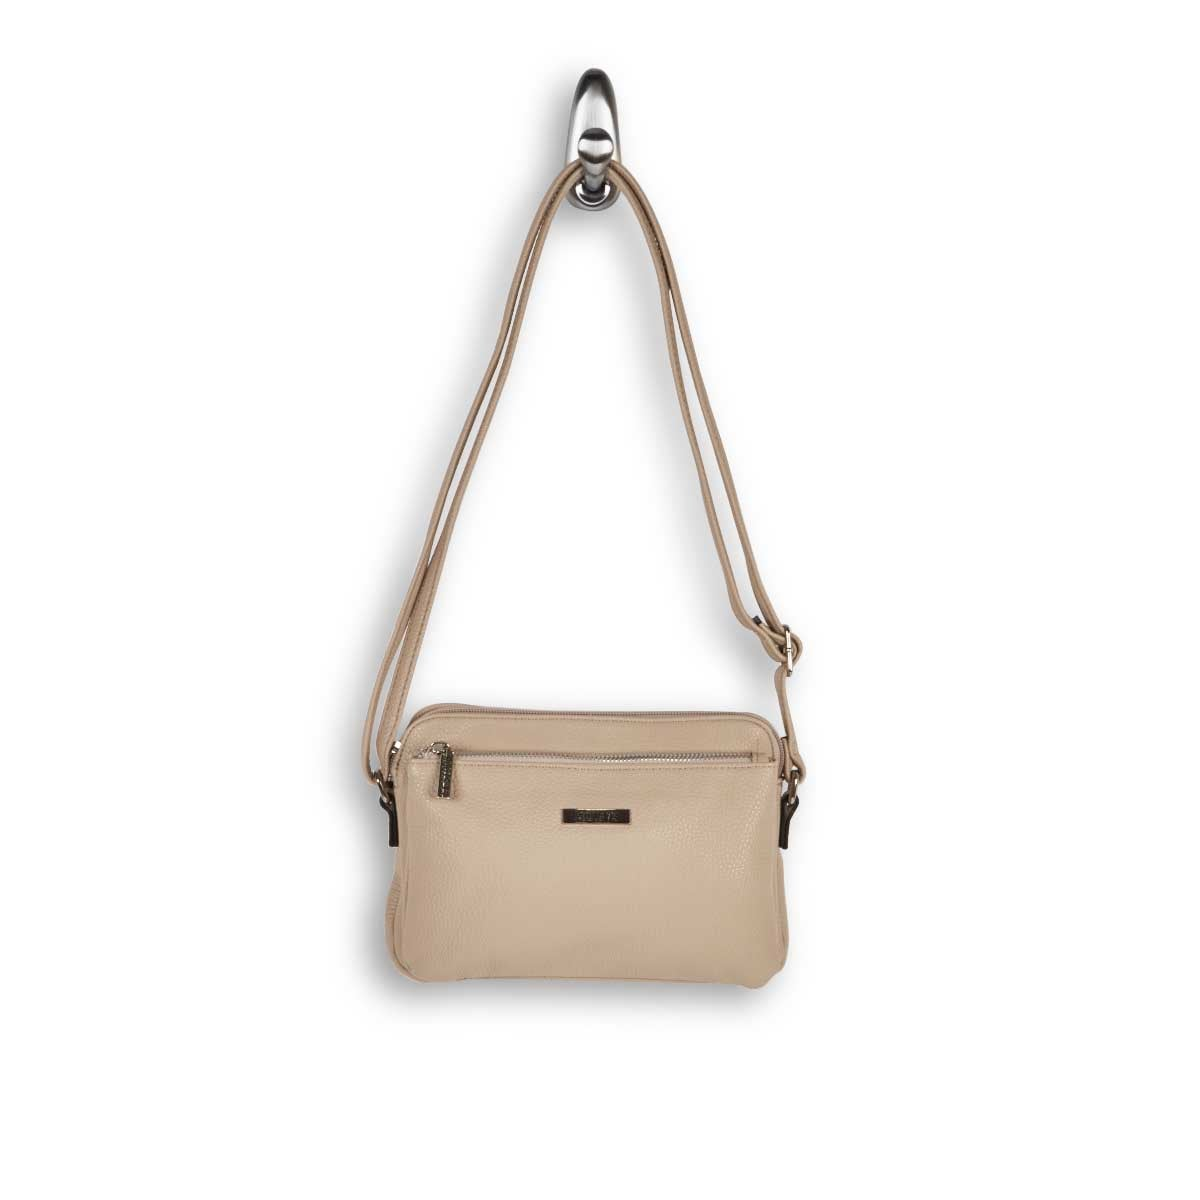 Lds stone east/west small crossbody bag